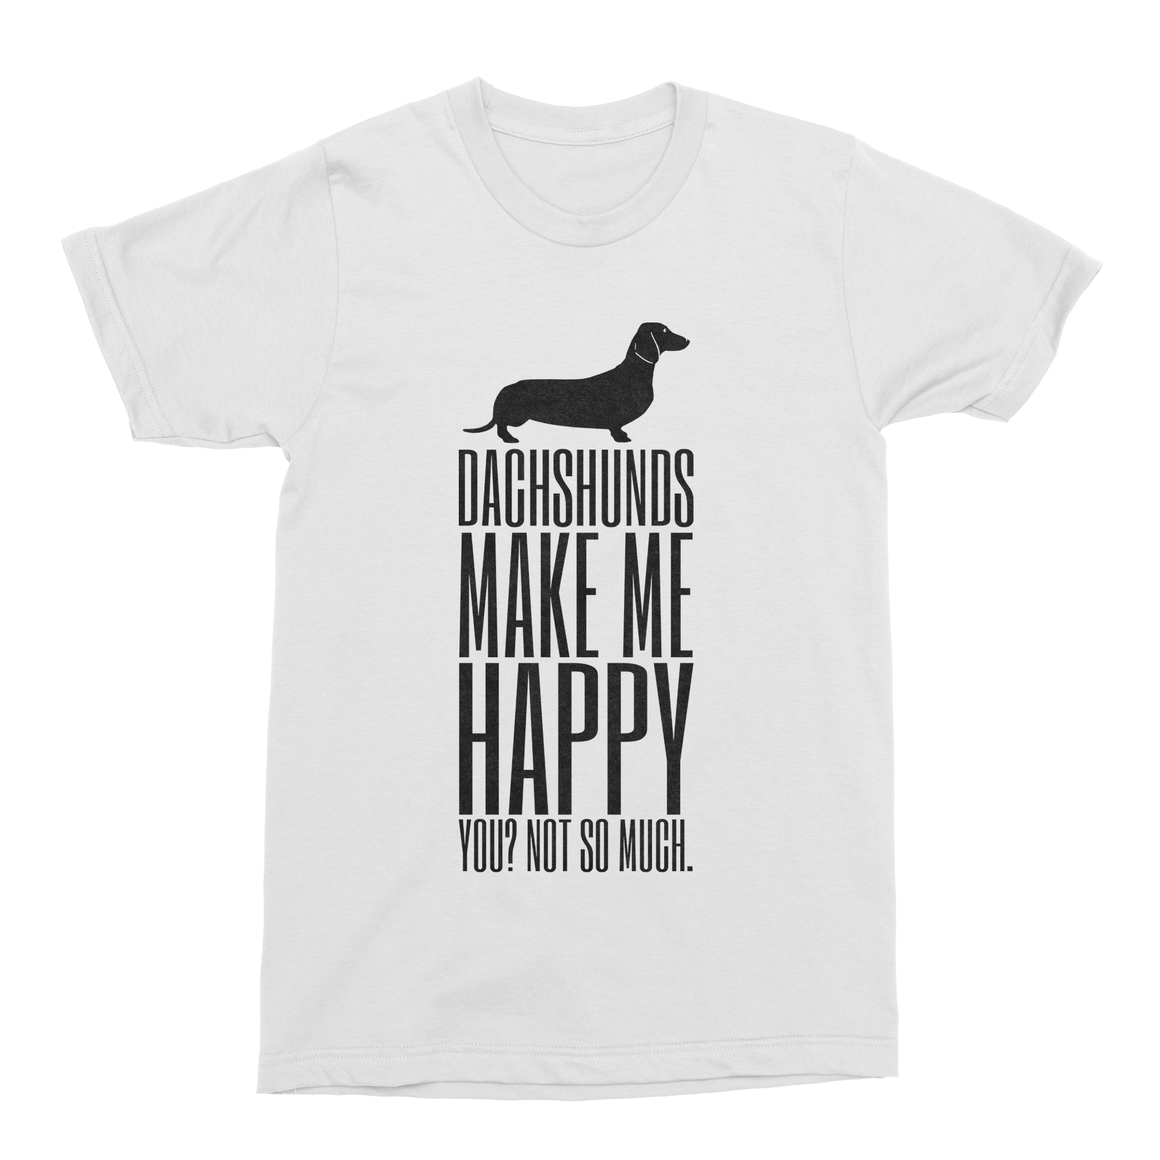 Dachshunds Make Me Happy Men's T-Shirt-Curartee